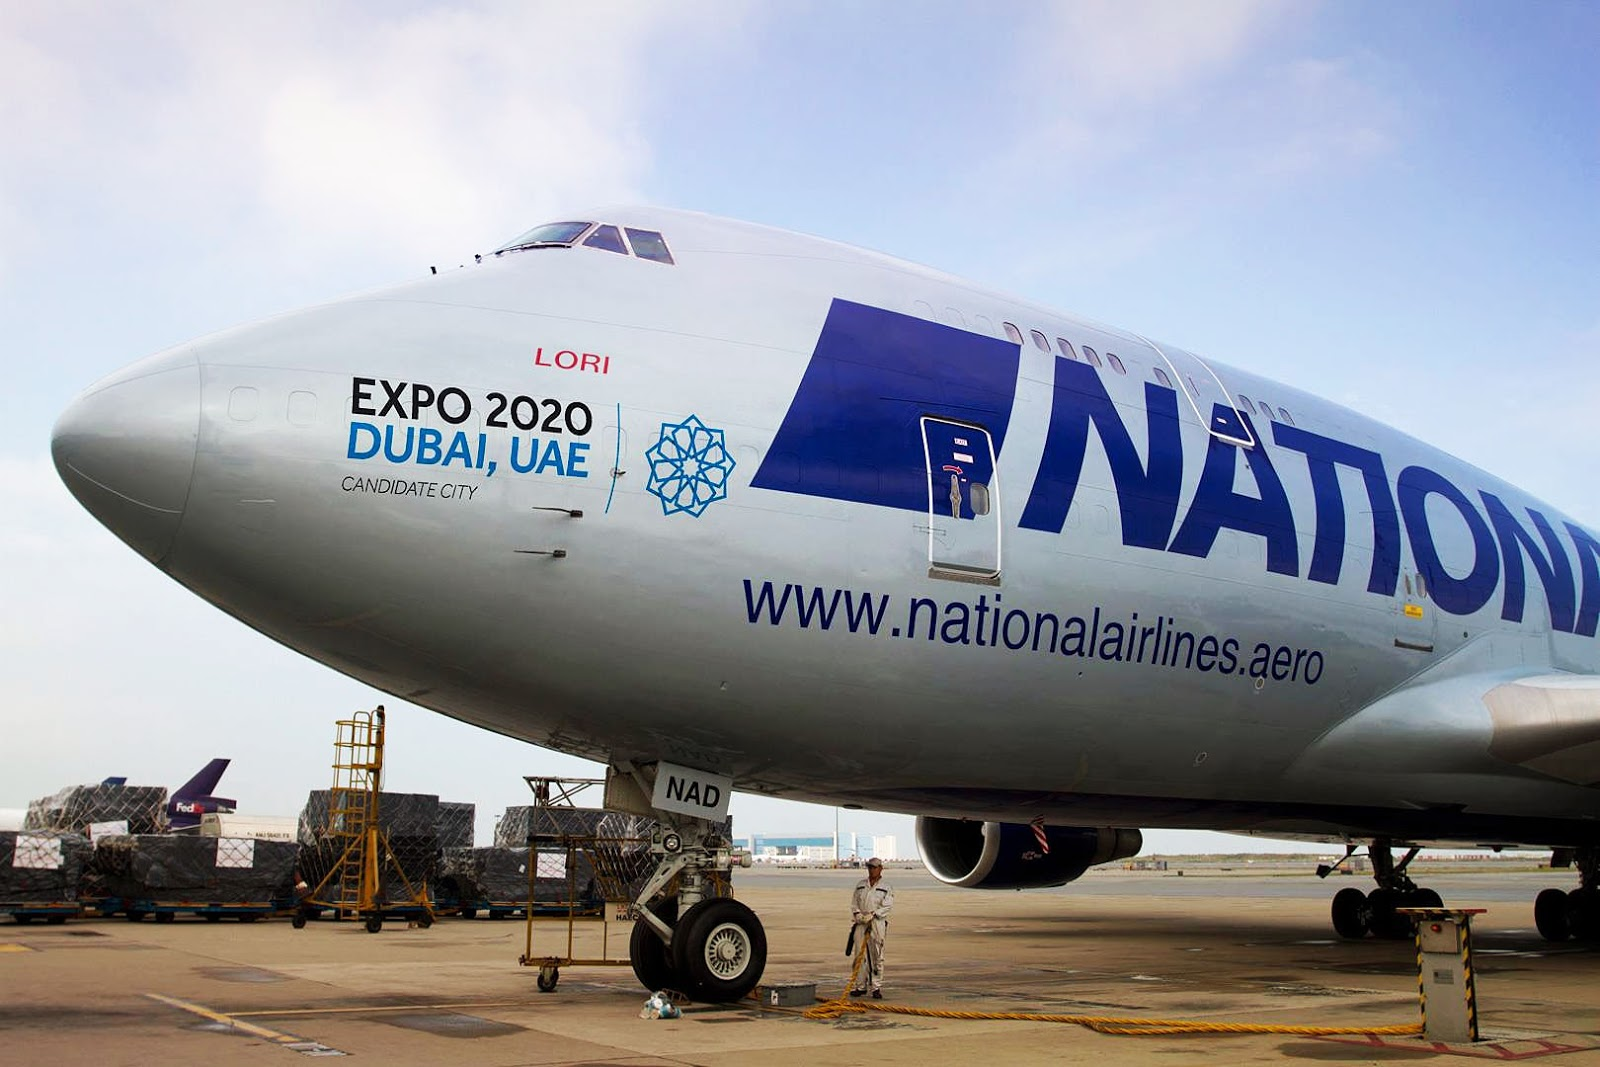 Expo 2020 Dubai, UAE: National Air Cargo To Support Dubai Expo ...